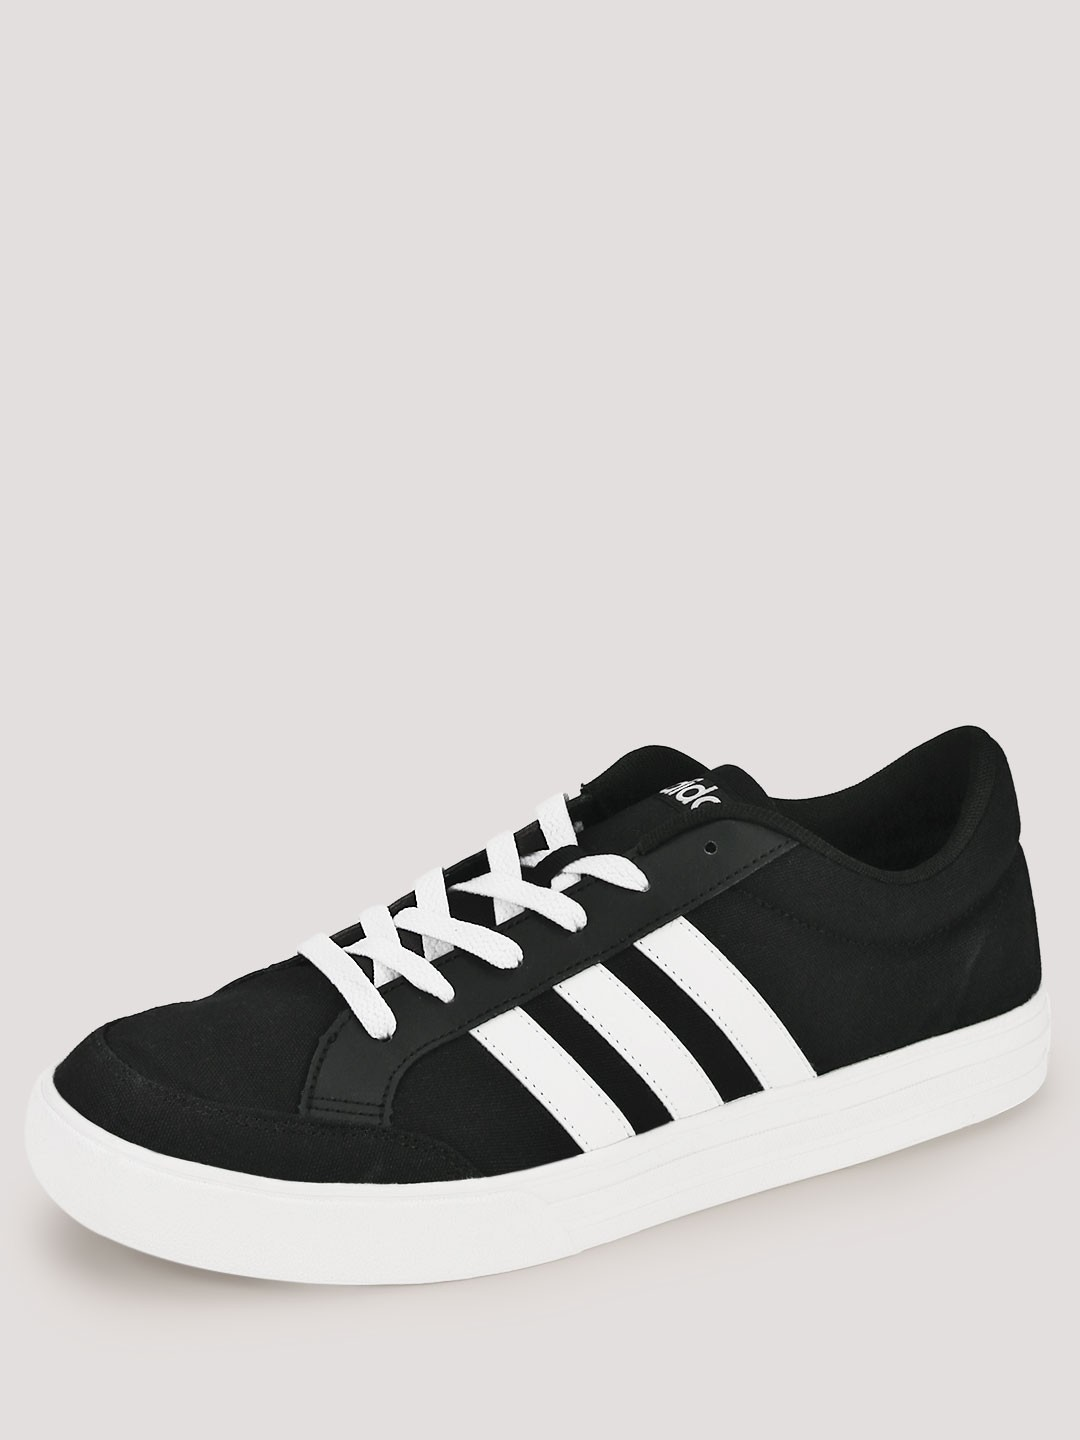 Adidas Shoes Images